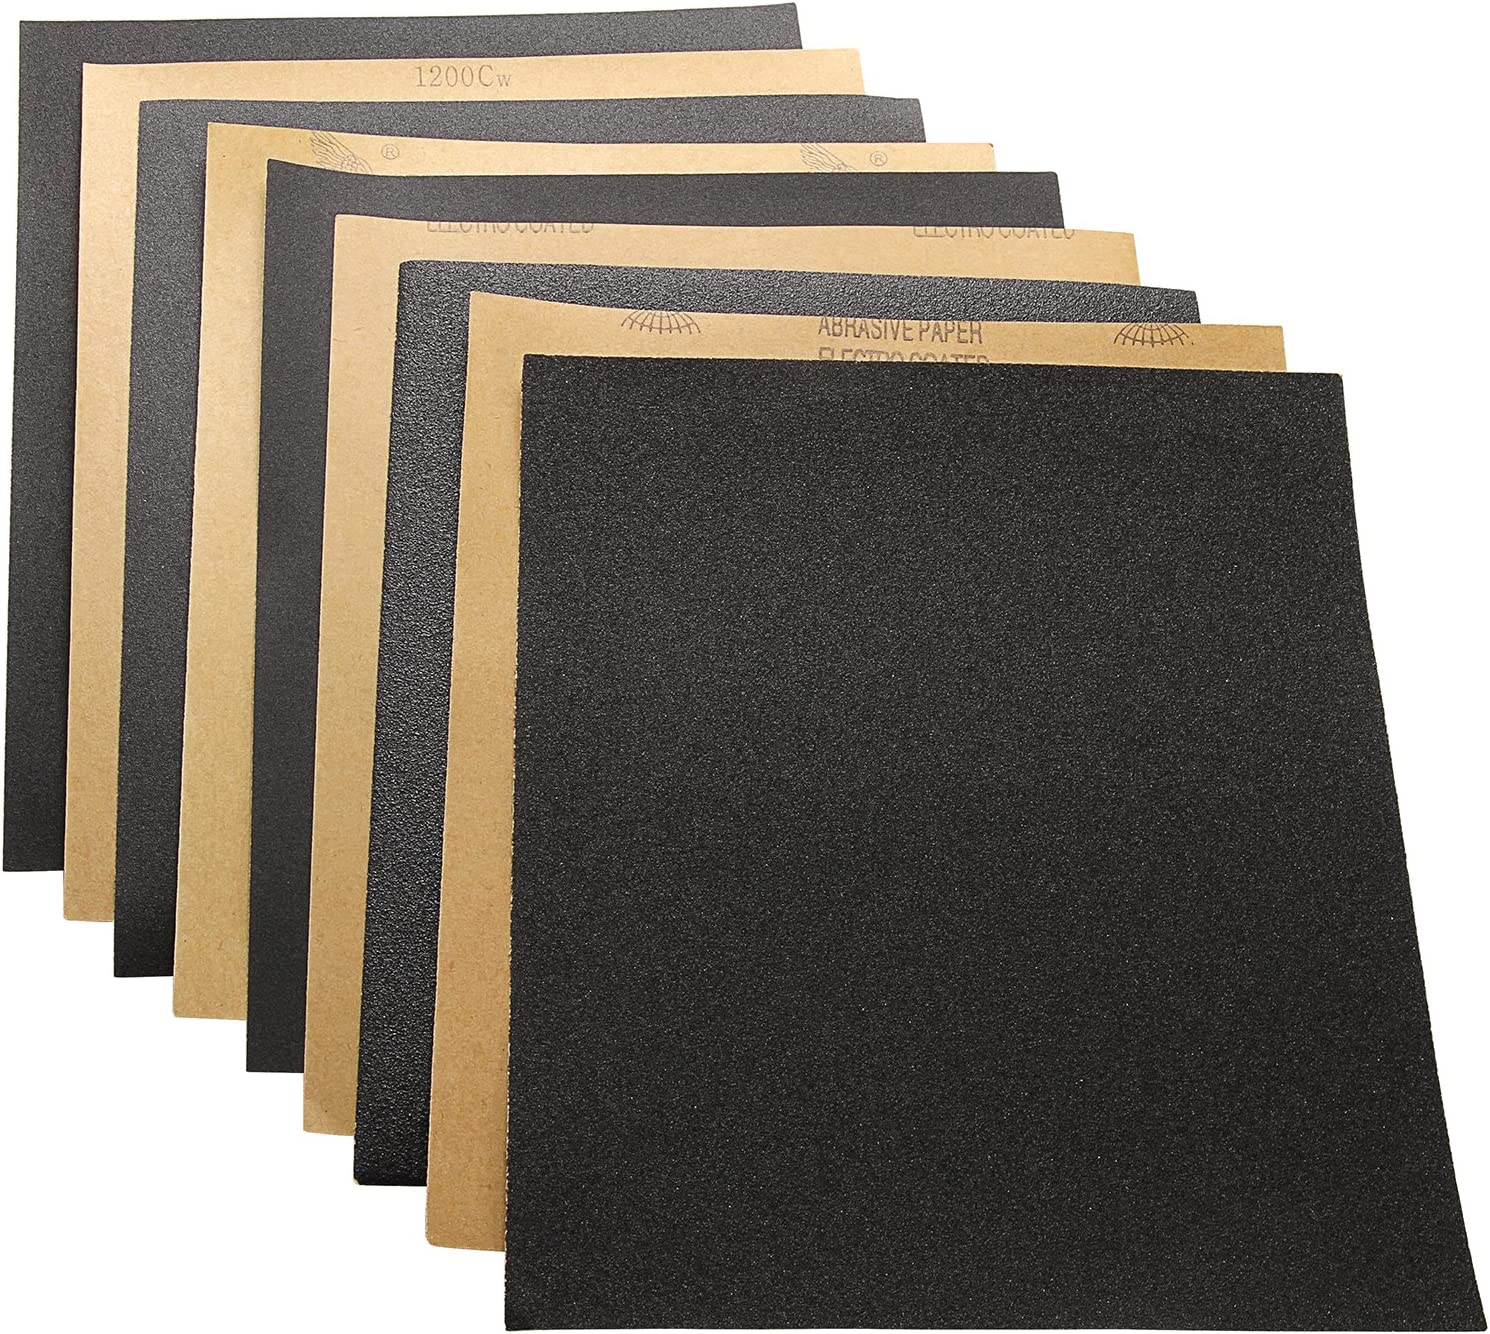 Wet or Dry Sanding Metal Sanding and Automotive Polishing 9 x 11 Inch 60 To 2000 Assorted Grit Sandpaper for Wood Furniture Finishing 34 Sheet